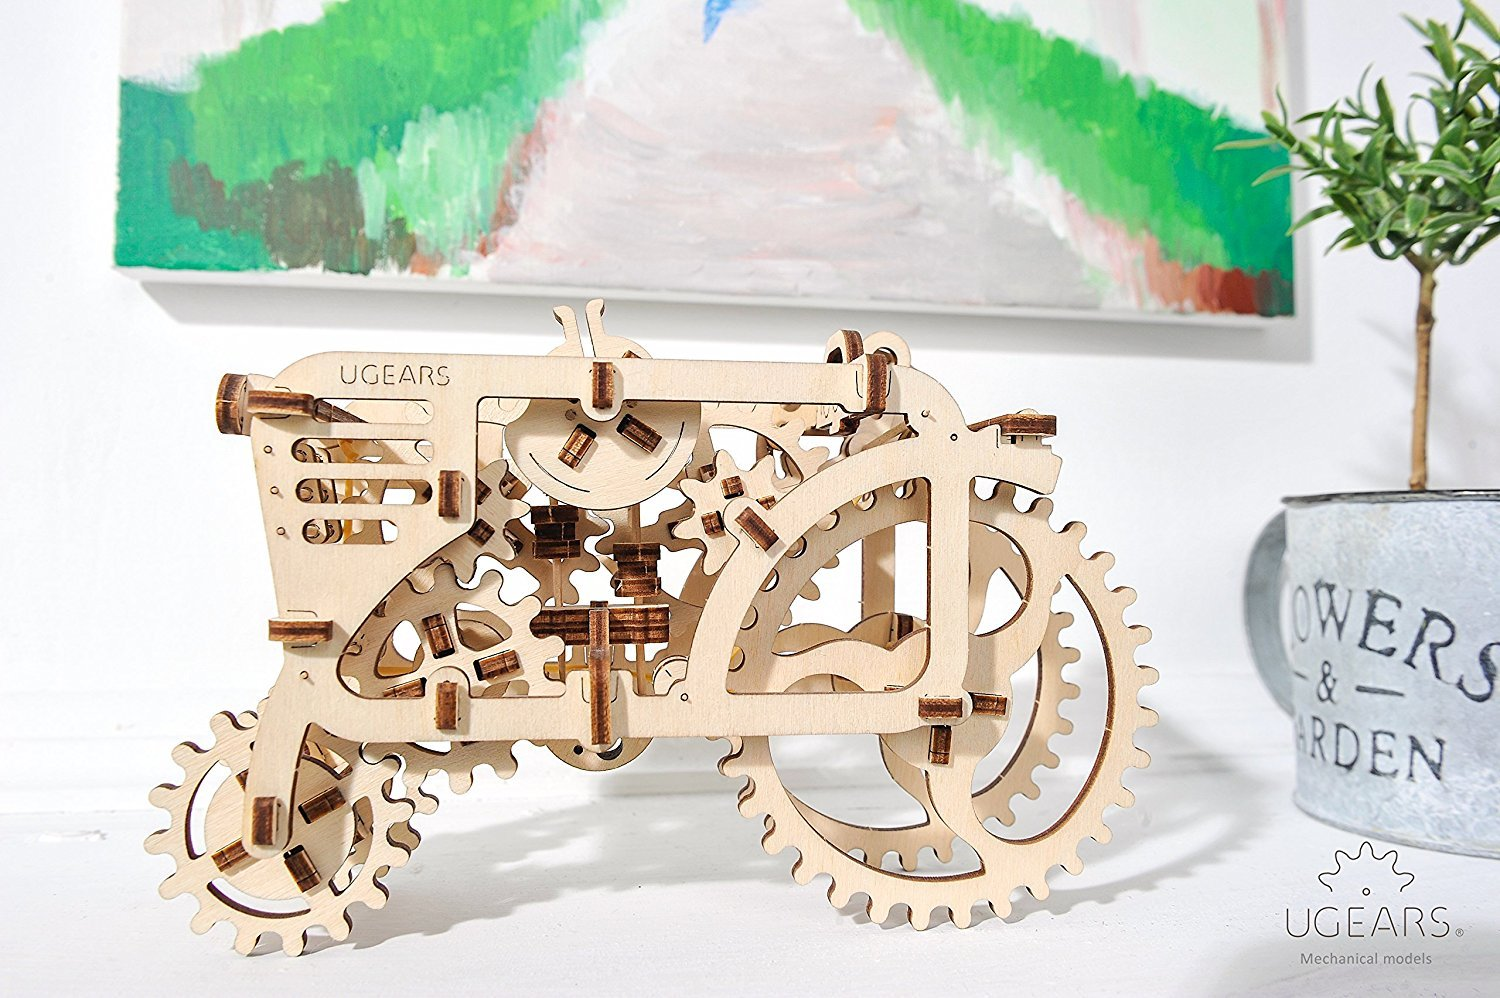 格安人気 Ugears Tractor 3D Wooden Puzzles Adult B077PCZWJL Toys Craft Tractor DIY Brain Teaser Games Engineering Toys board Games Self-Assembly Mechanical Model [並行輸入品] B077PCZWJL, 大分県国東市:278855ba --- clubavenue.eu